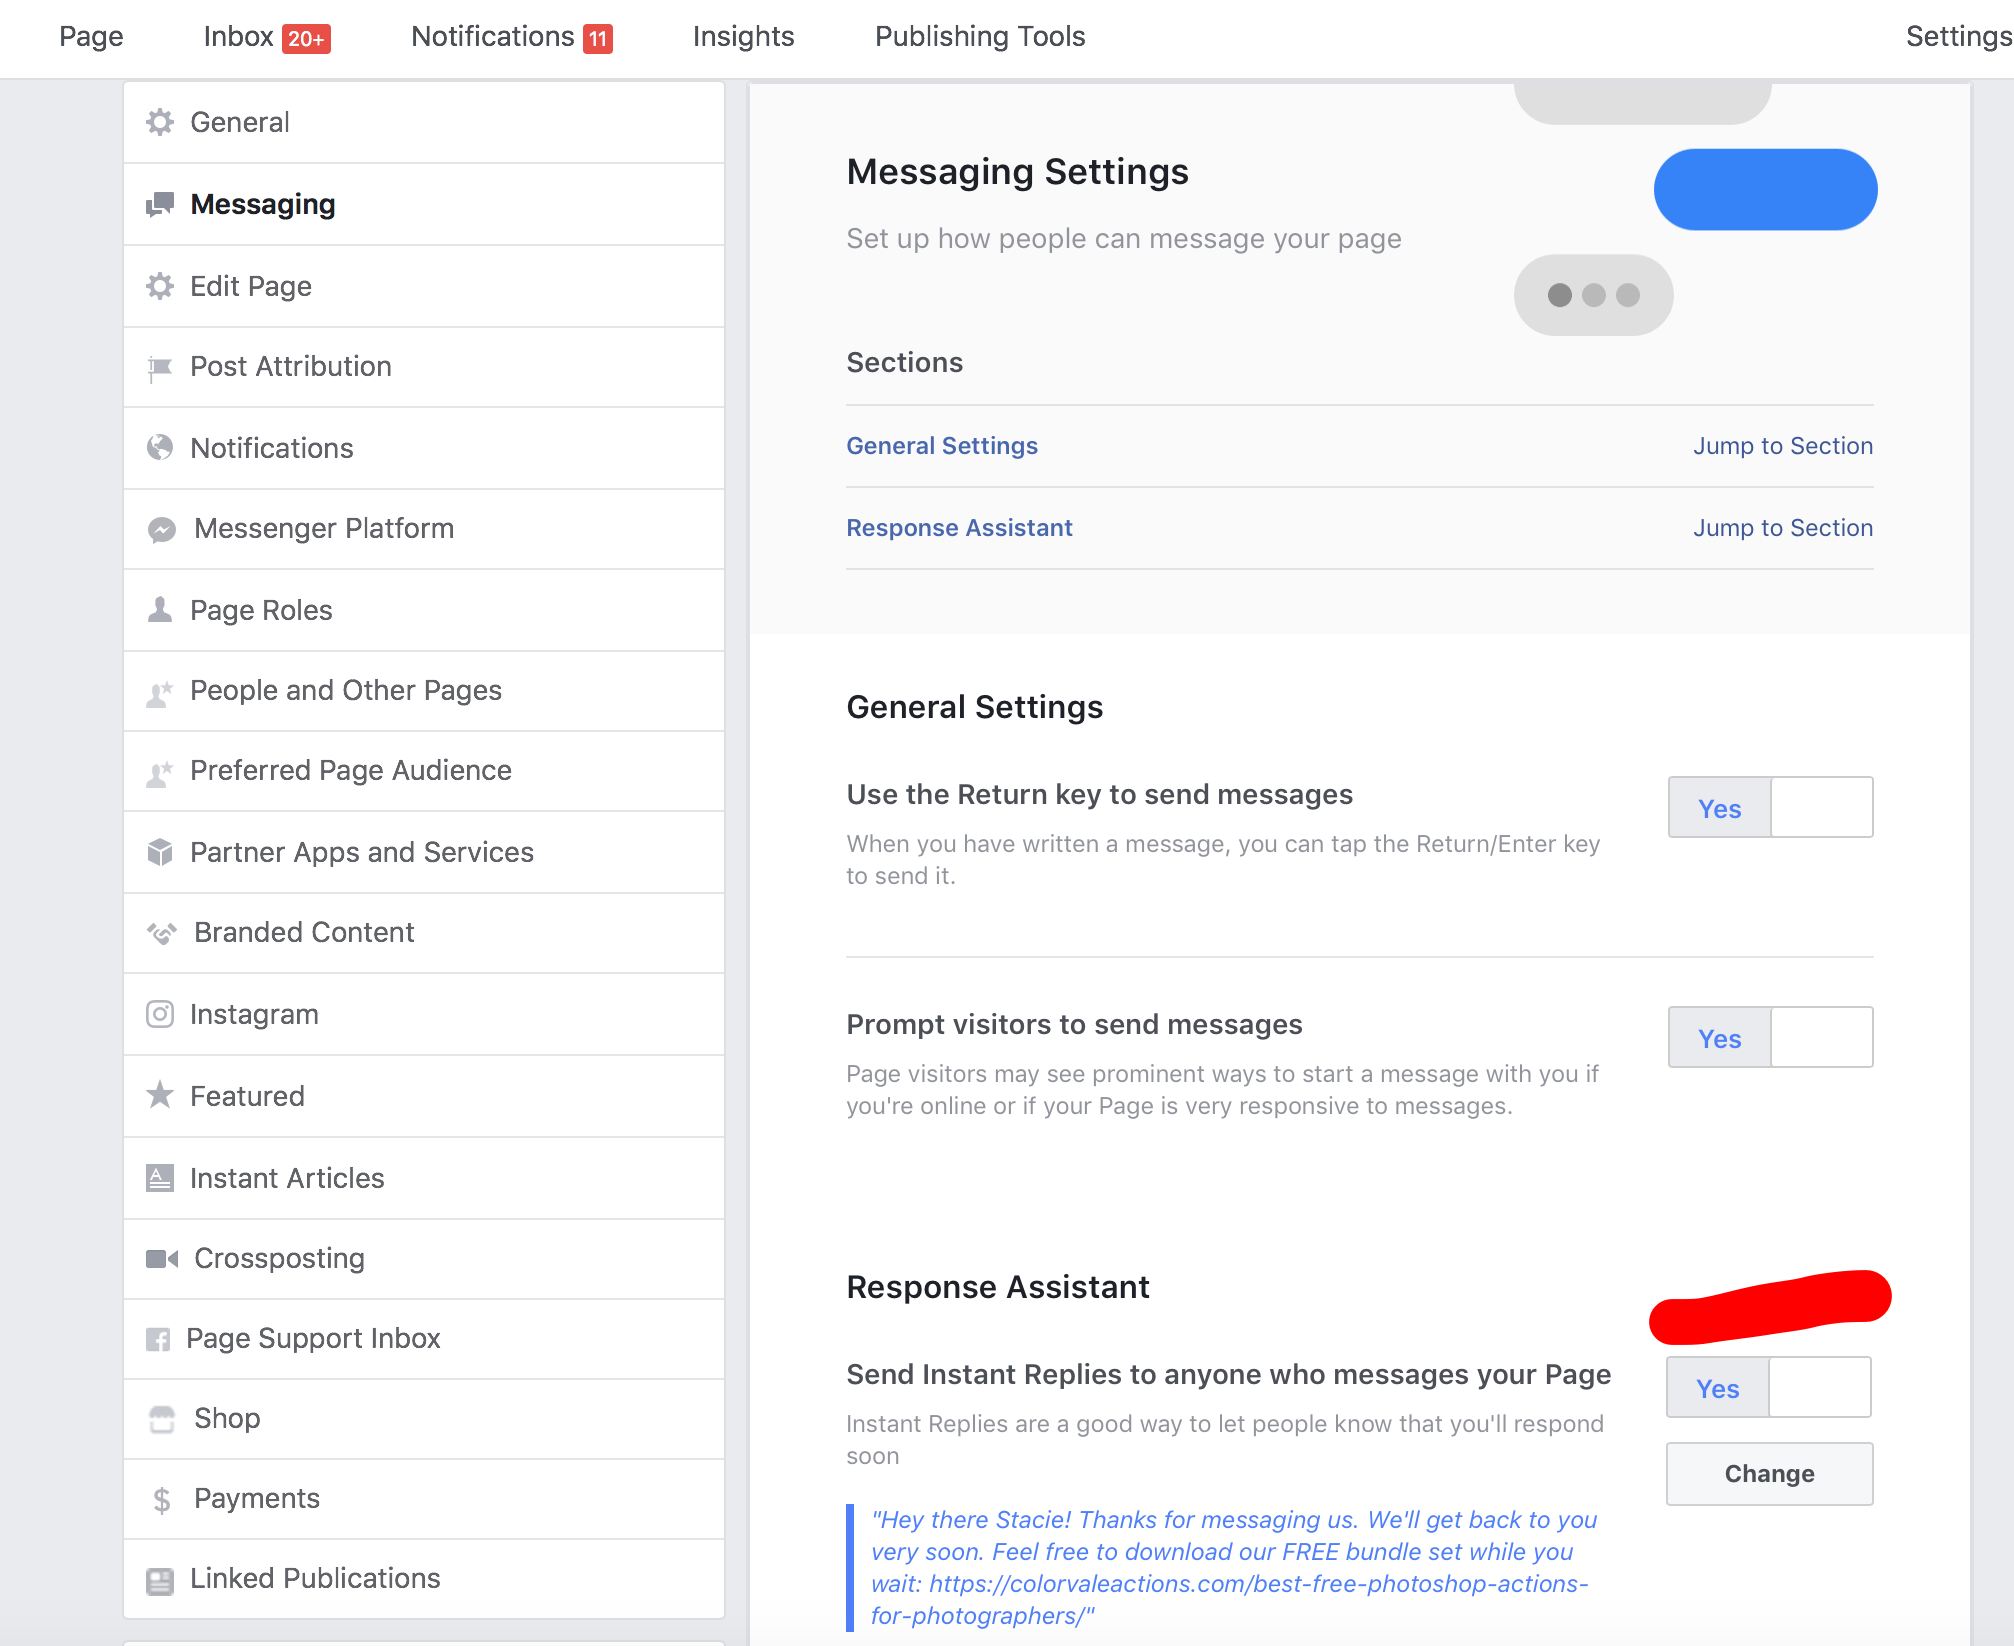 How To Reach Facebook Business Support How to Contact